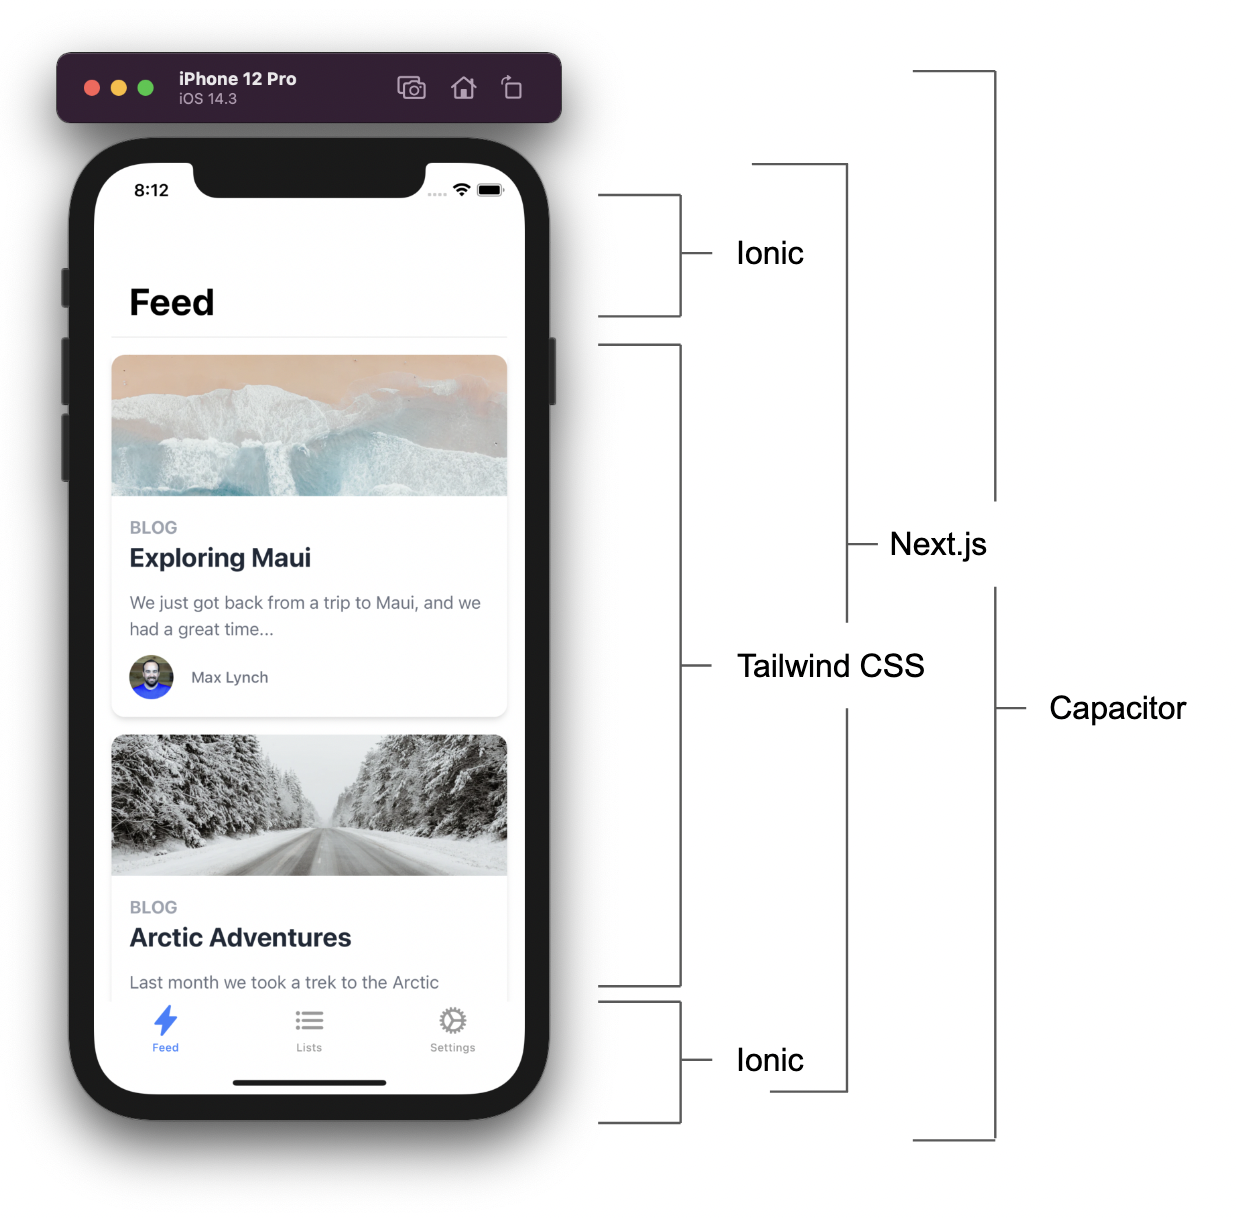 The Mobile Stack Visualized